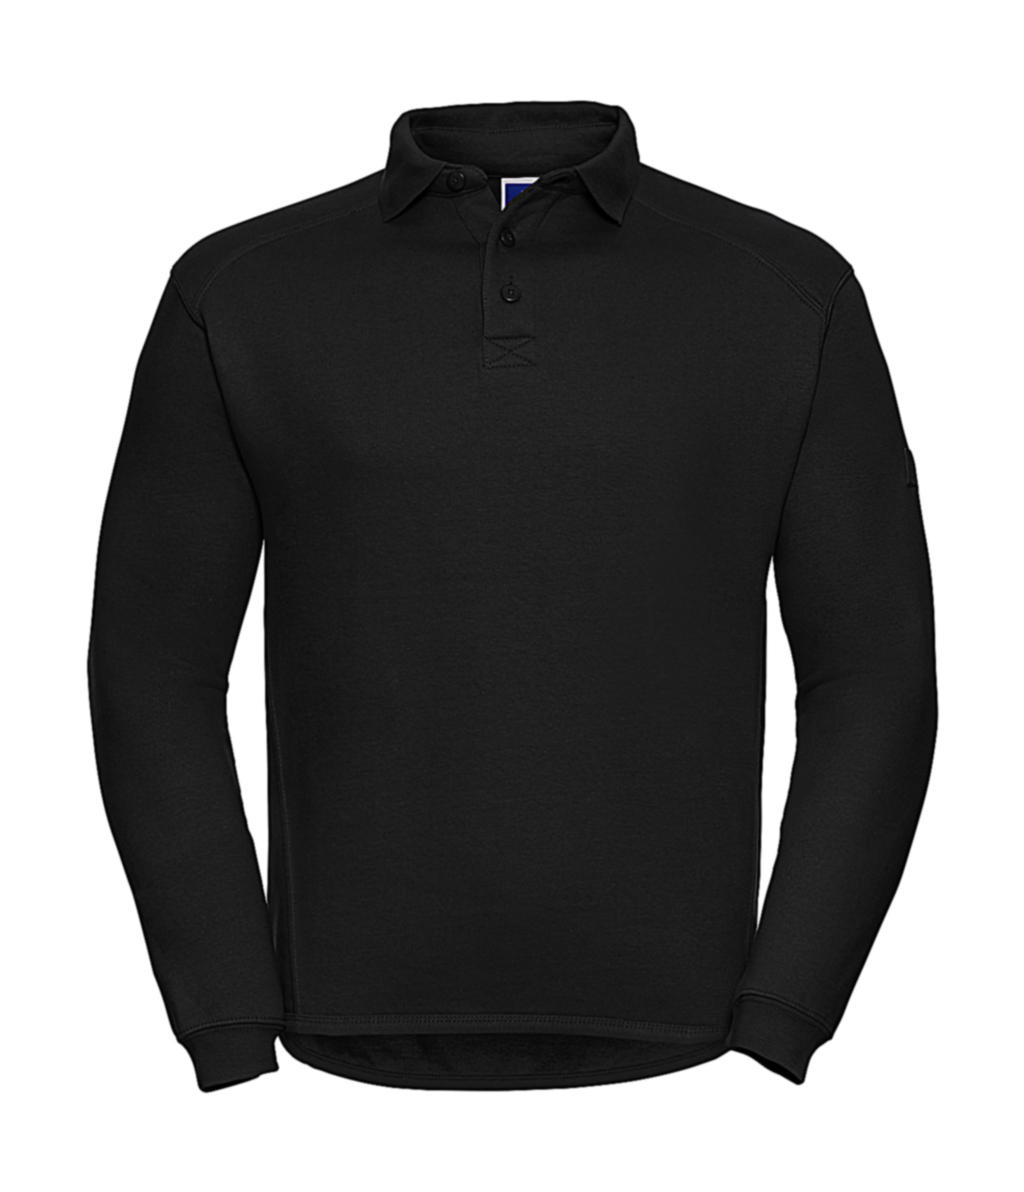 Heavy Duty Collar Sweatshirt